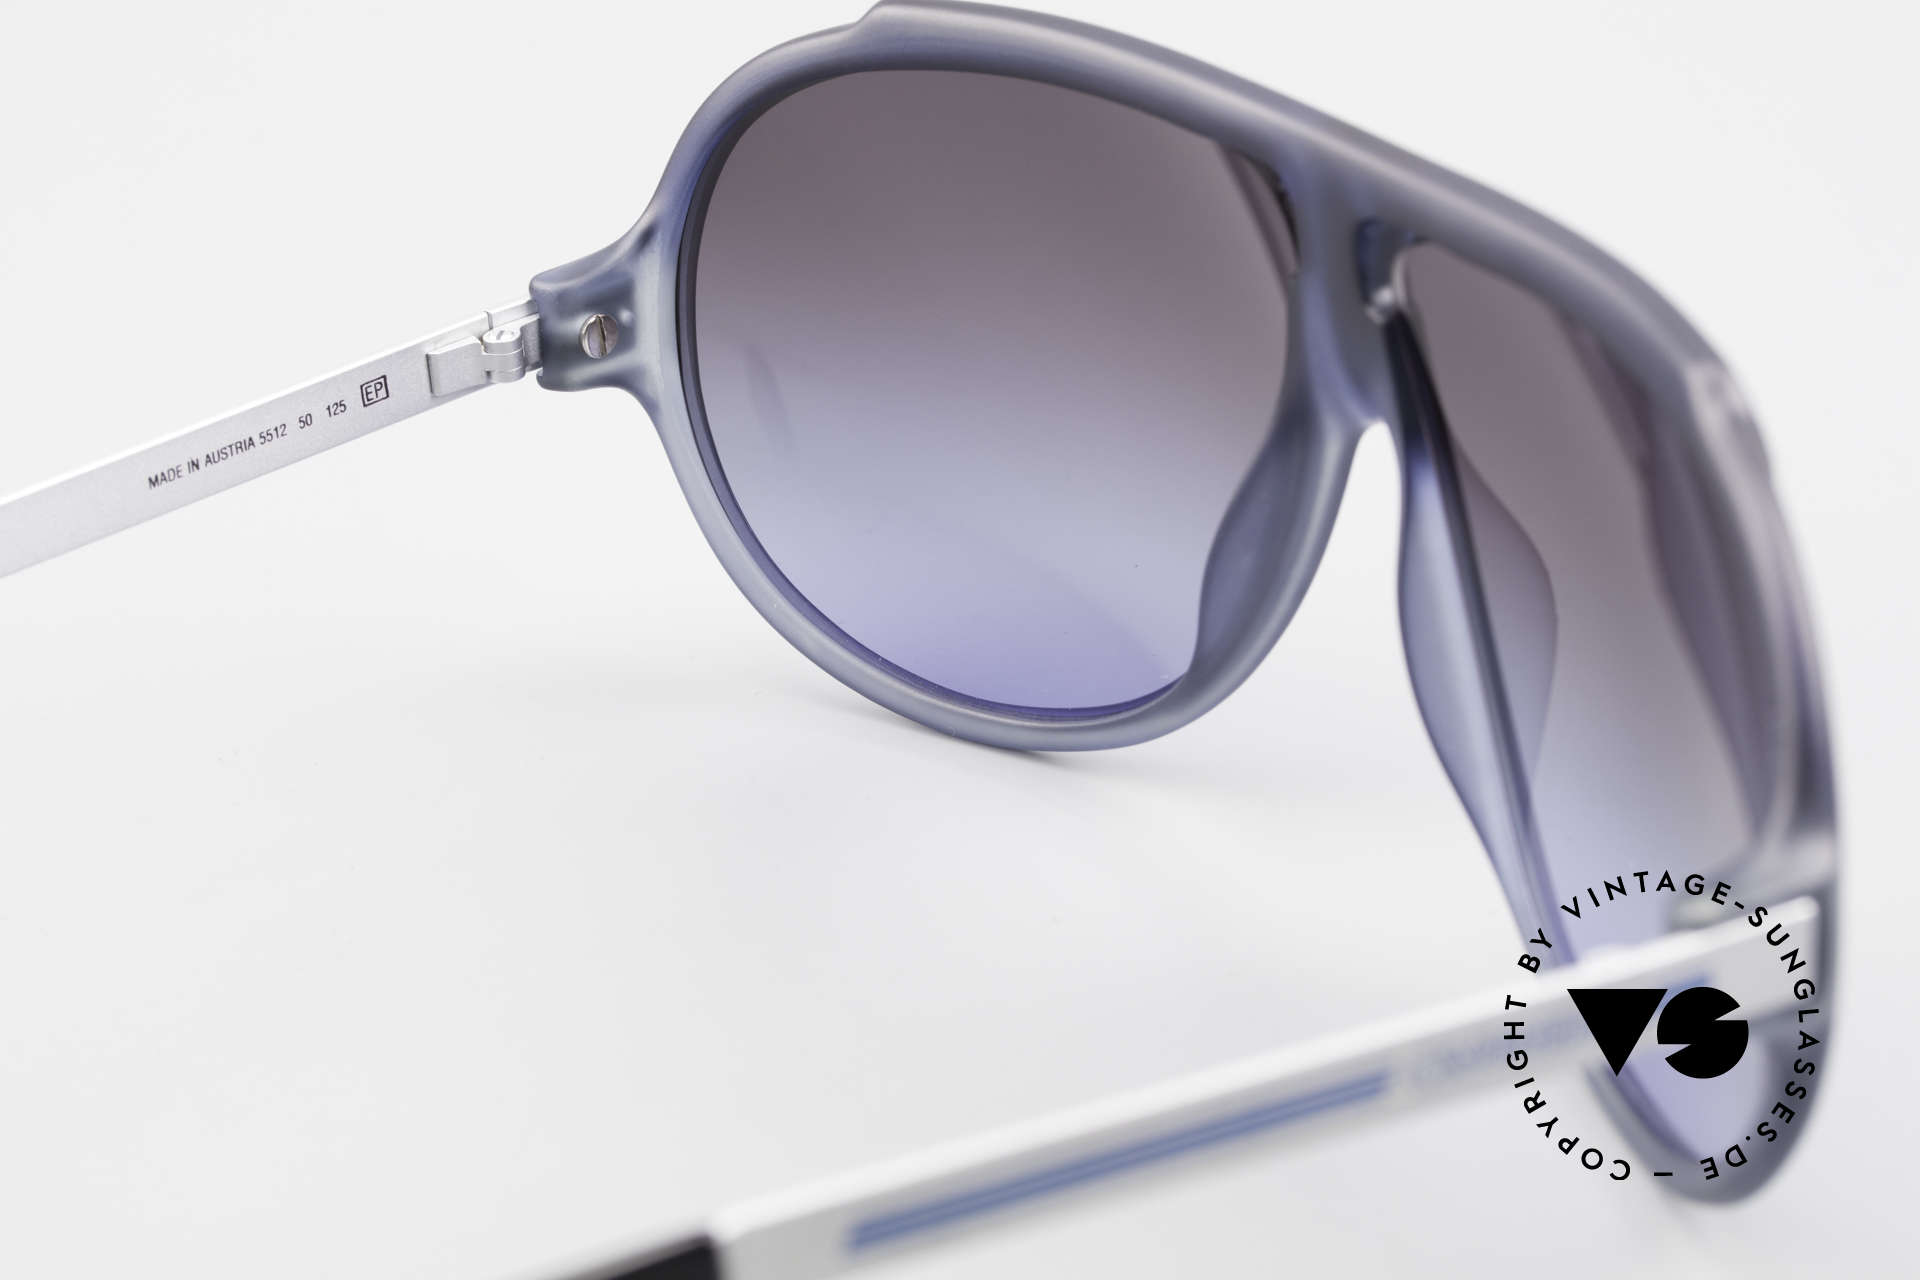 Carrera 5512 Iconic 80's Vintage Sunglasses, NO retro shades; a 30 years old ORIGINAL + Carrera case, Made for Men